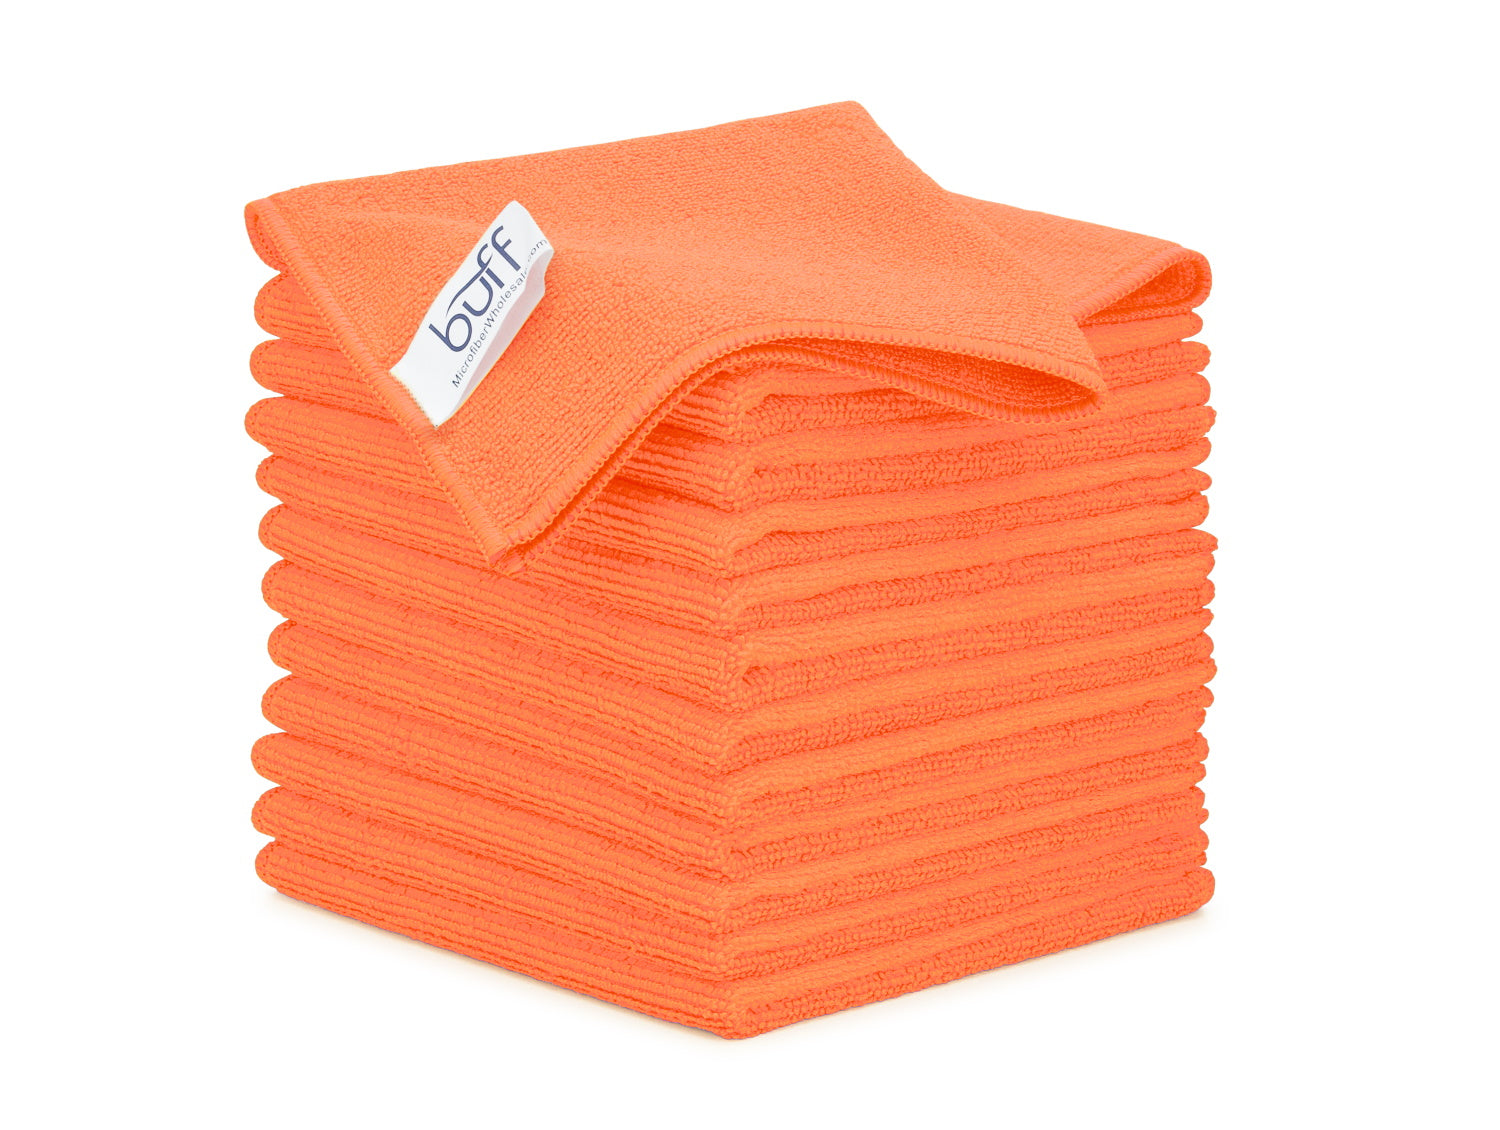 Orange Microfiber Cleaning Cloths 12 Pack